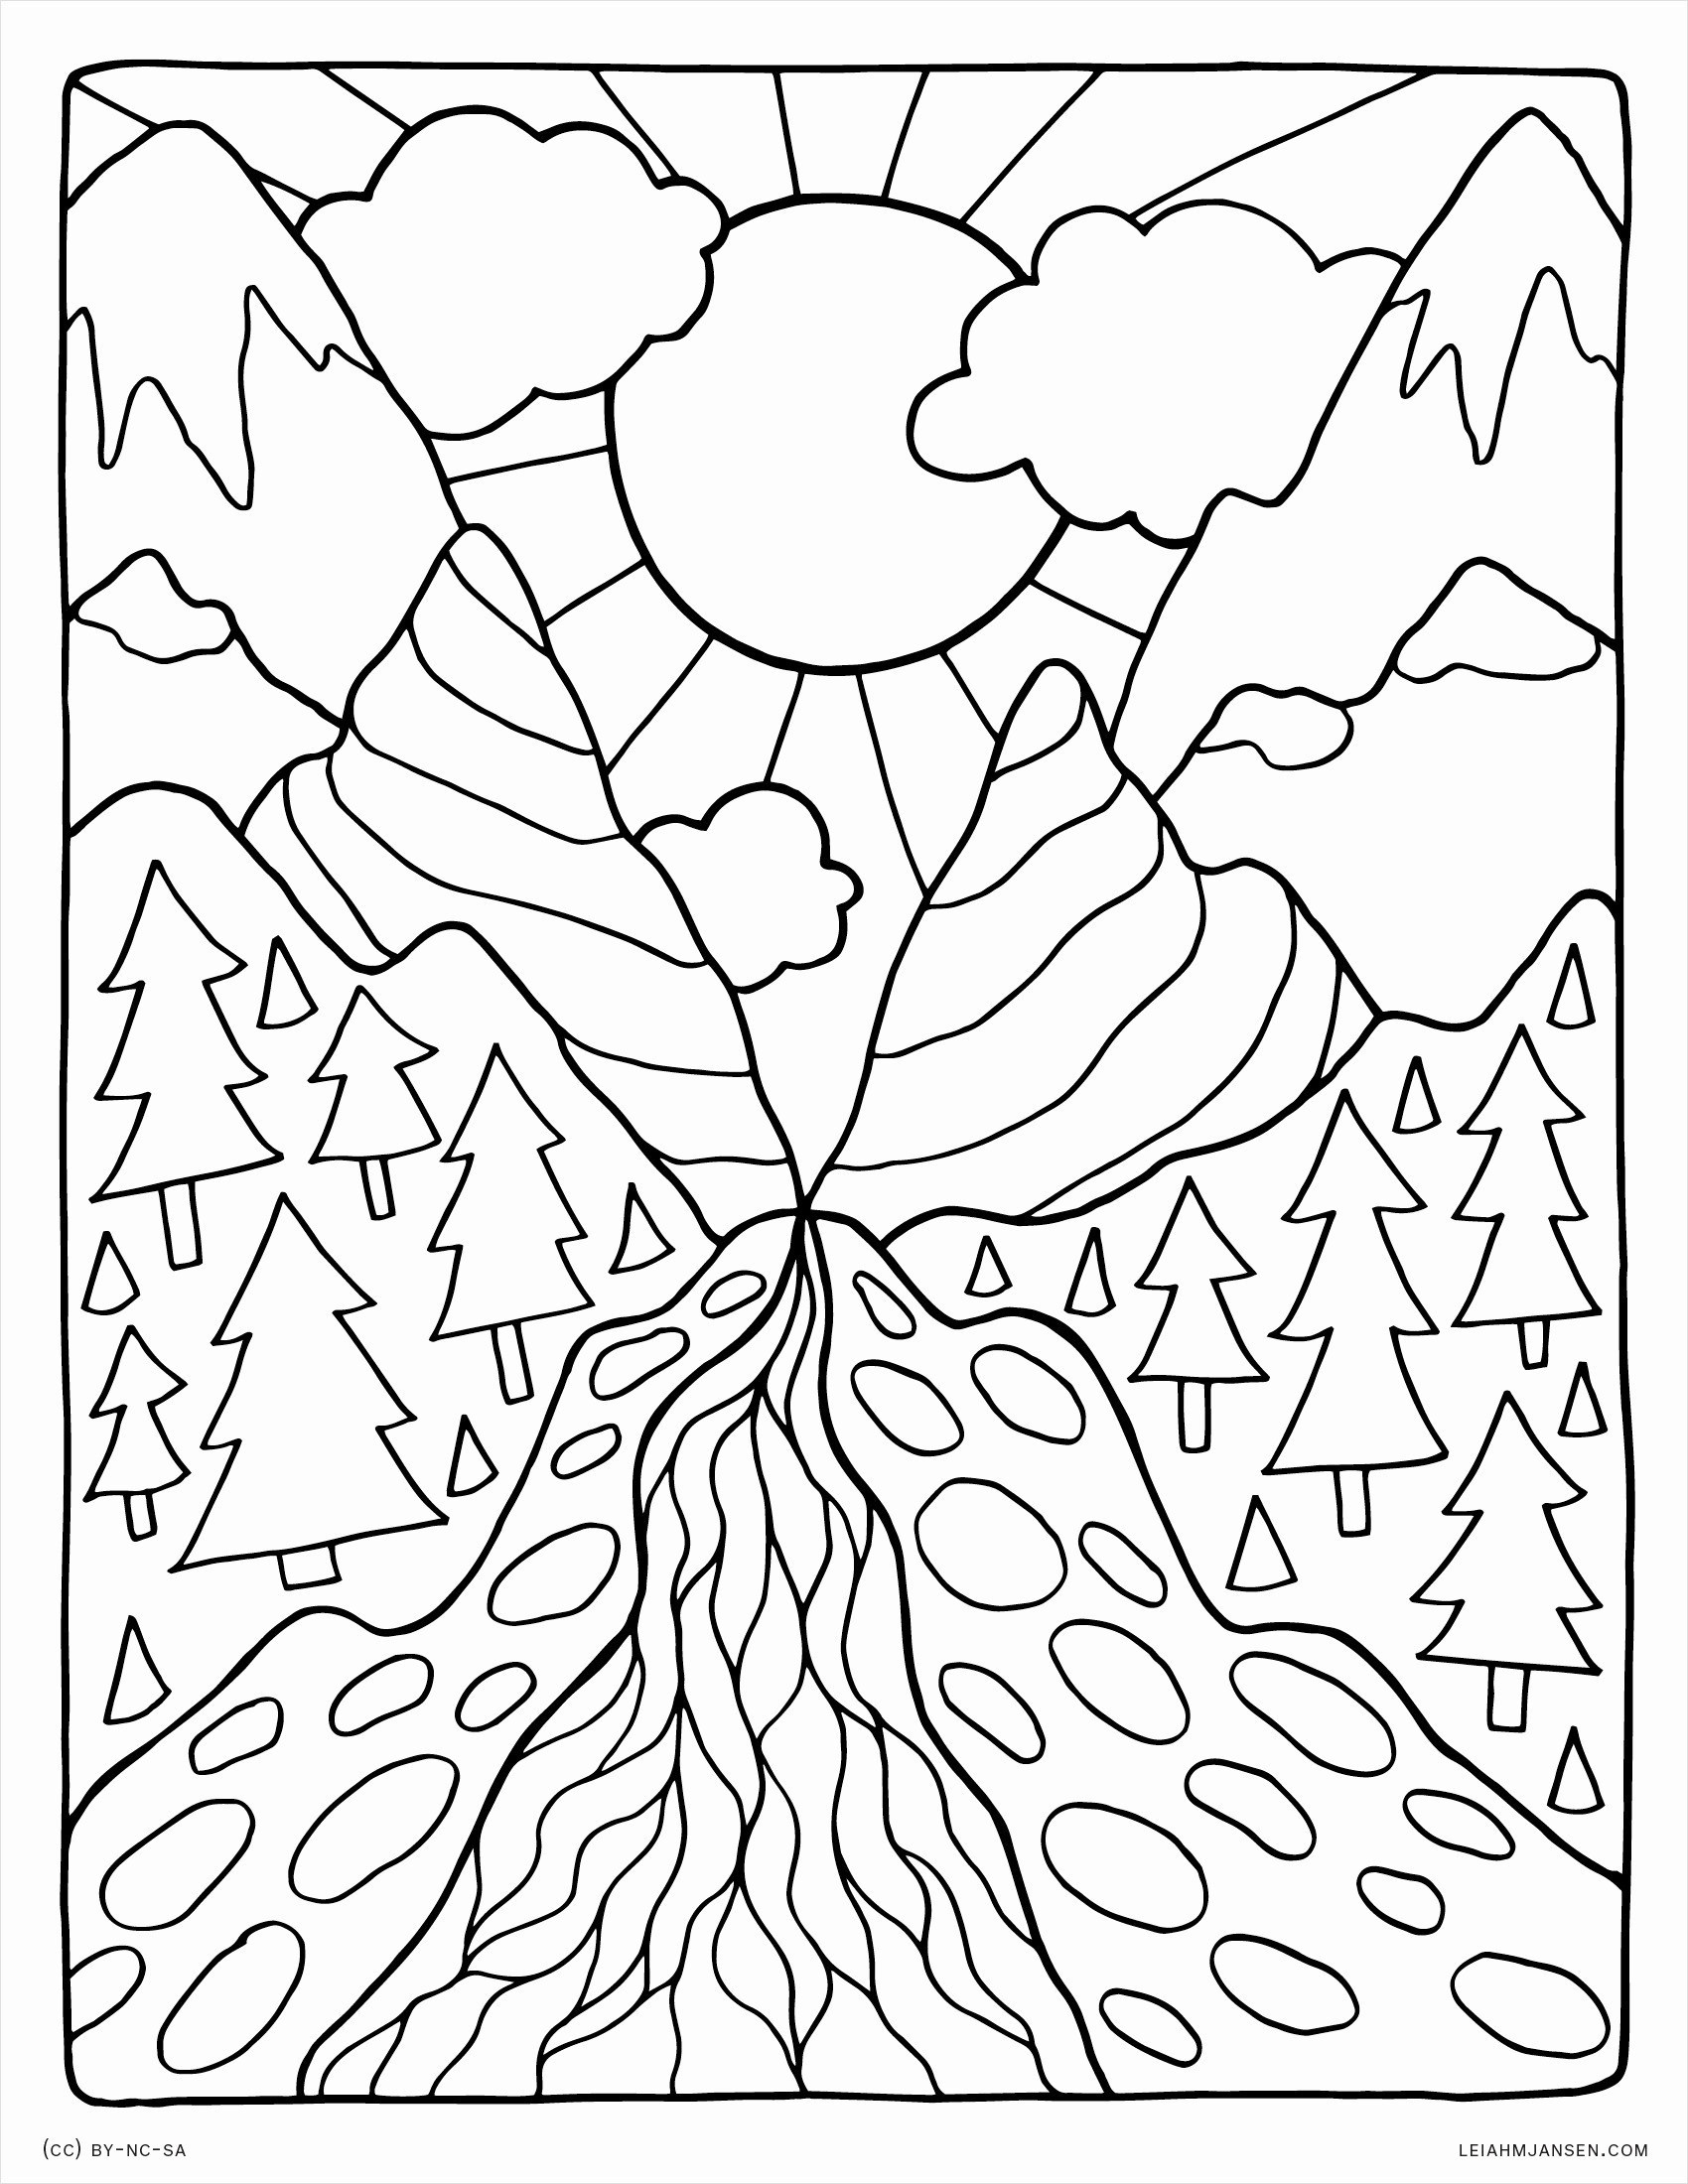 Coloring Pages For Kids Nature With Free Printable Nature Coloring - Free Printable Nature Coloring Pages For Adults